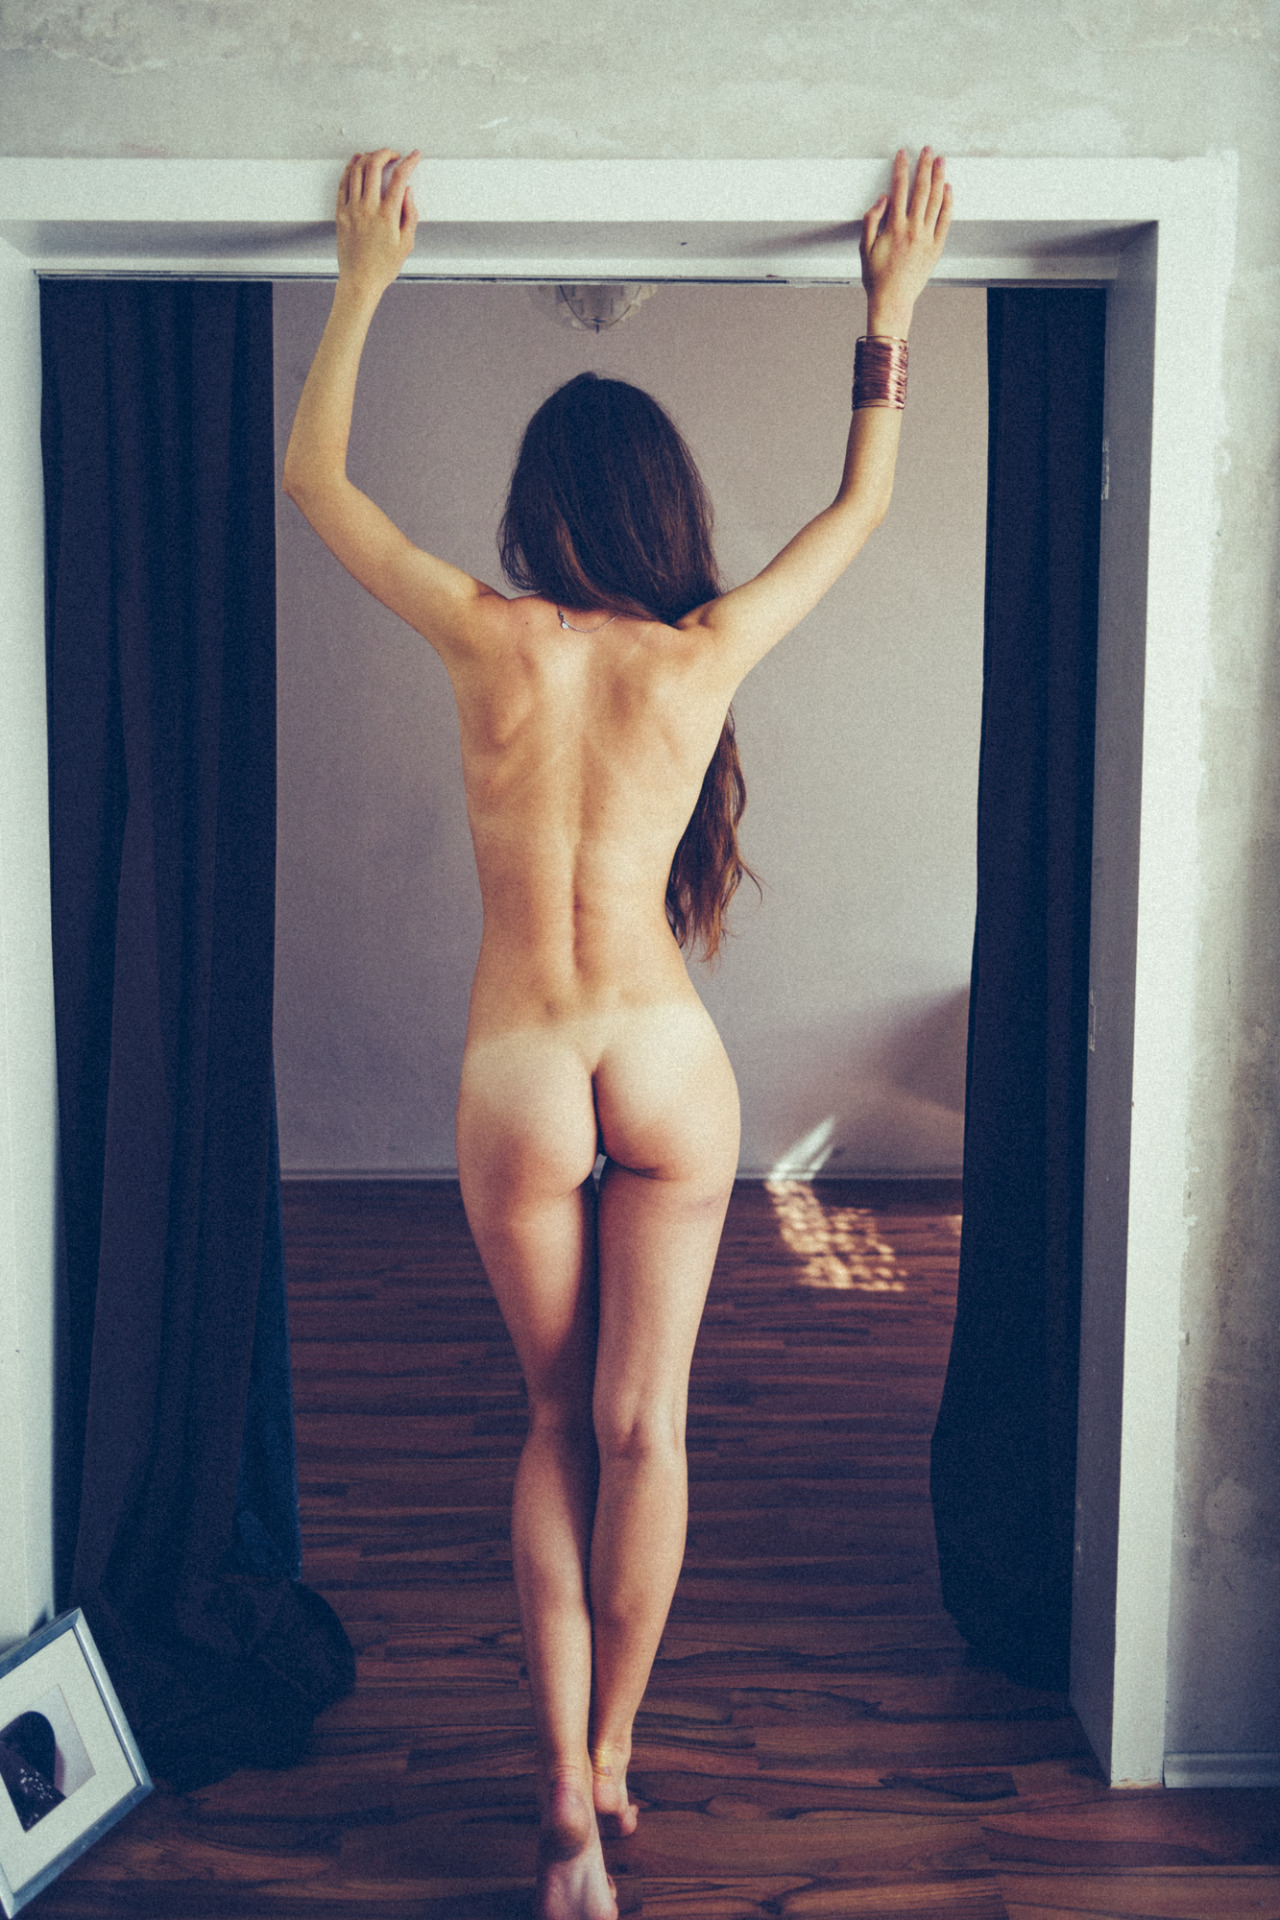 throw a dance party with gifs Gorgeous Erotic Photography Backside Slim Slender Smalltits Ass Greatass Dimples Nicelegs Waist Curly Attitude Disrobing